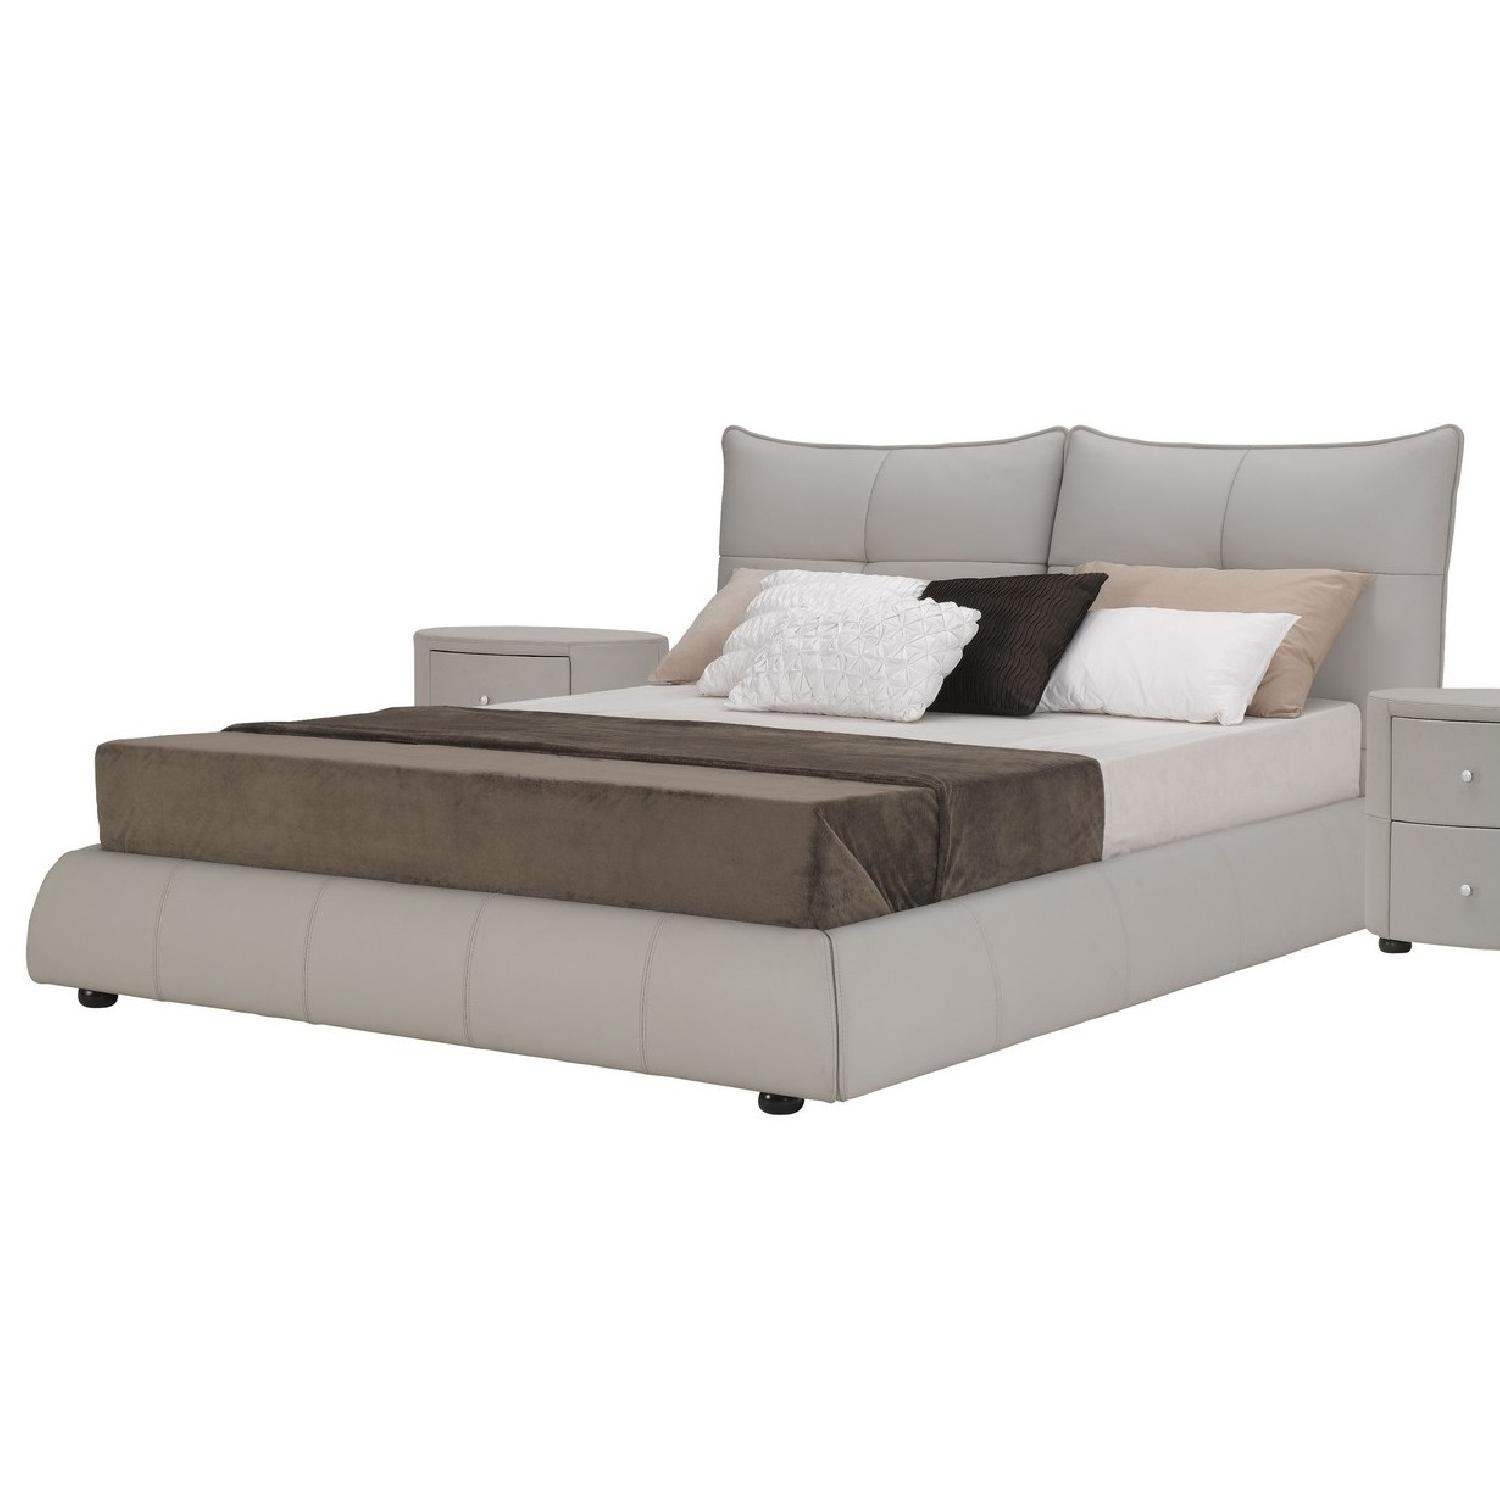 King Size Platform Bed in Full Premium Light Grey Leather w/ Padded Headboard